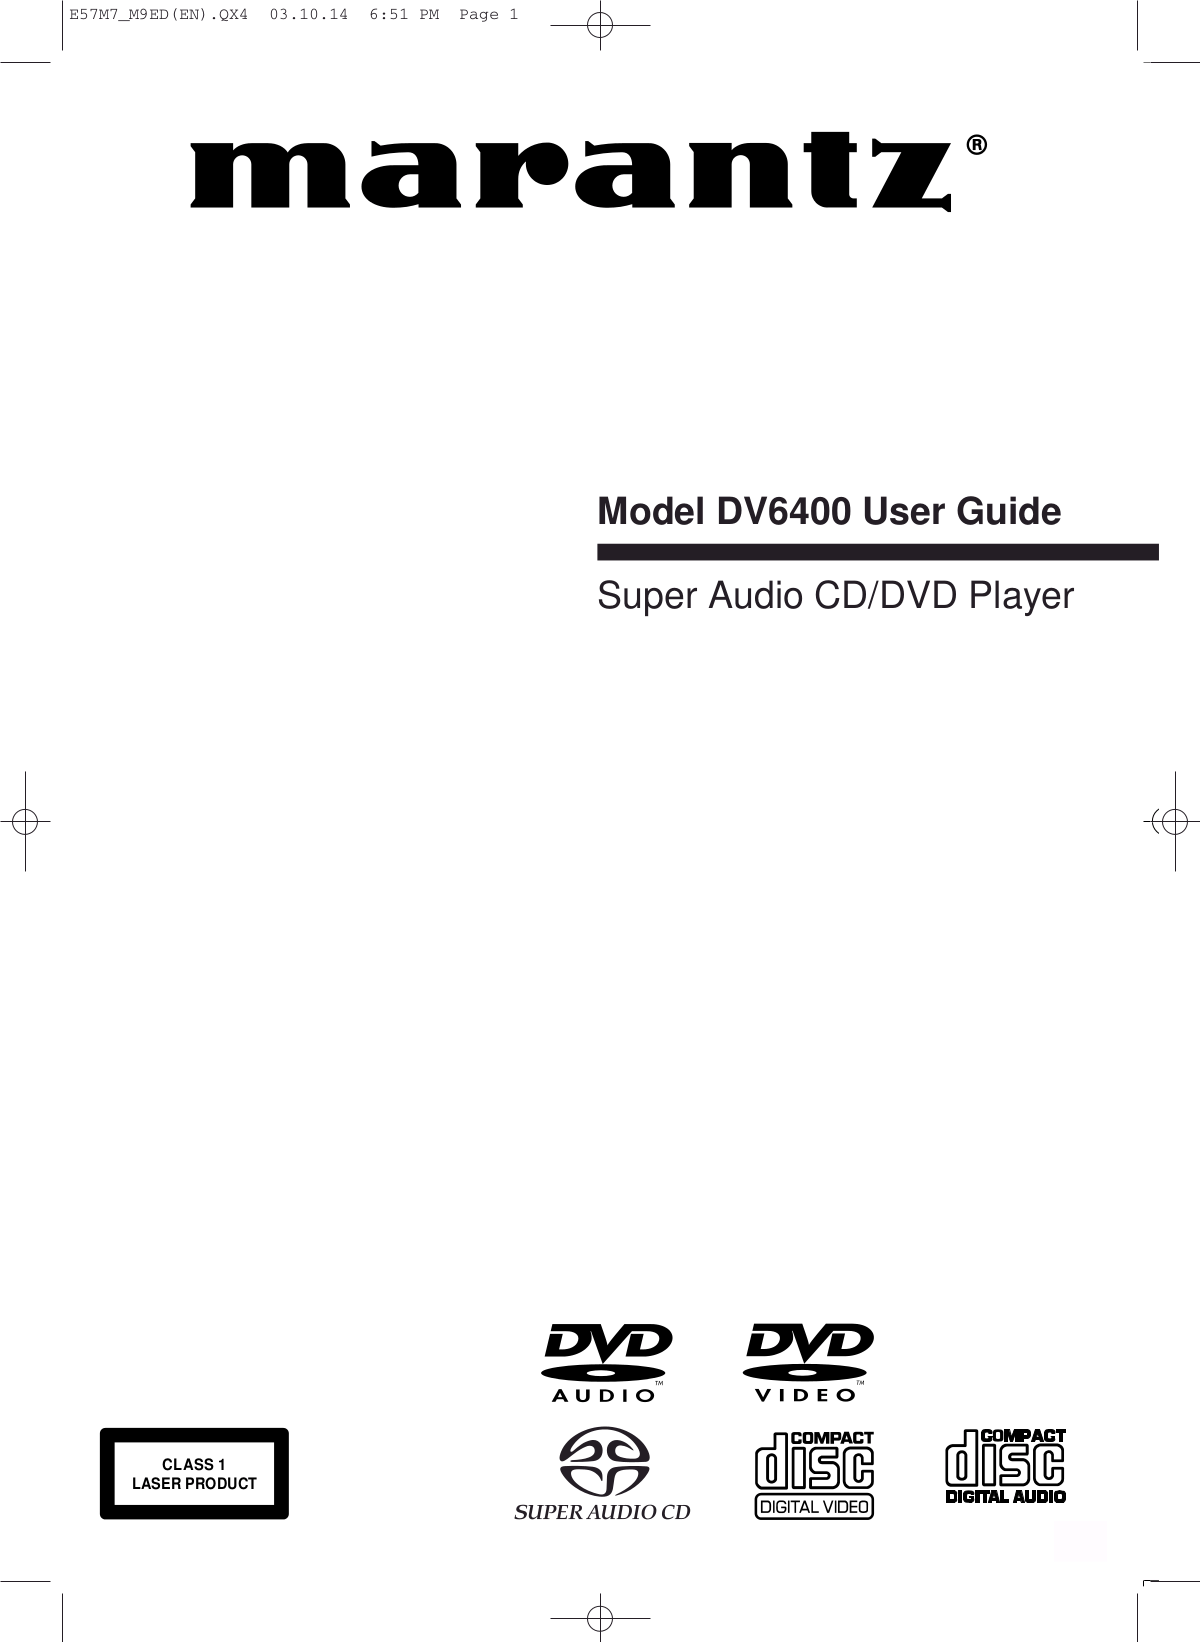 Download free pdf for Marantz DV6400 DVD Players manual